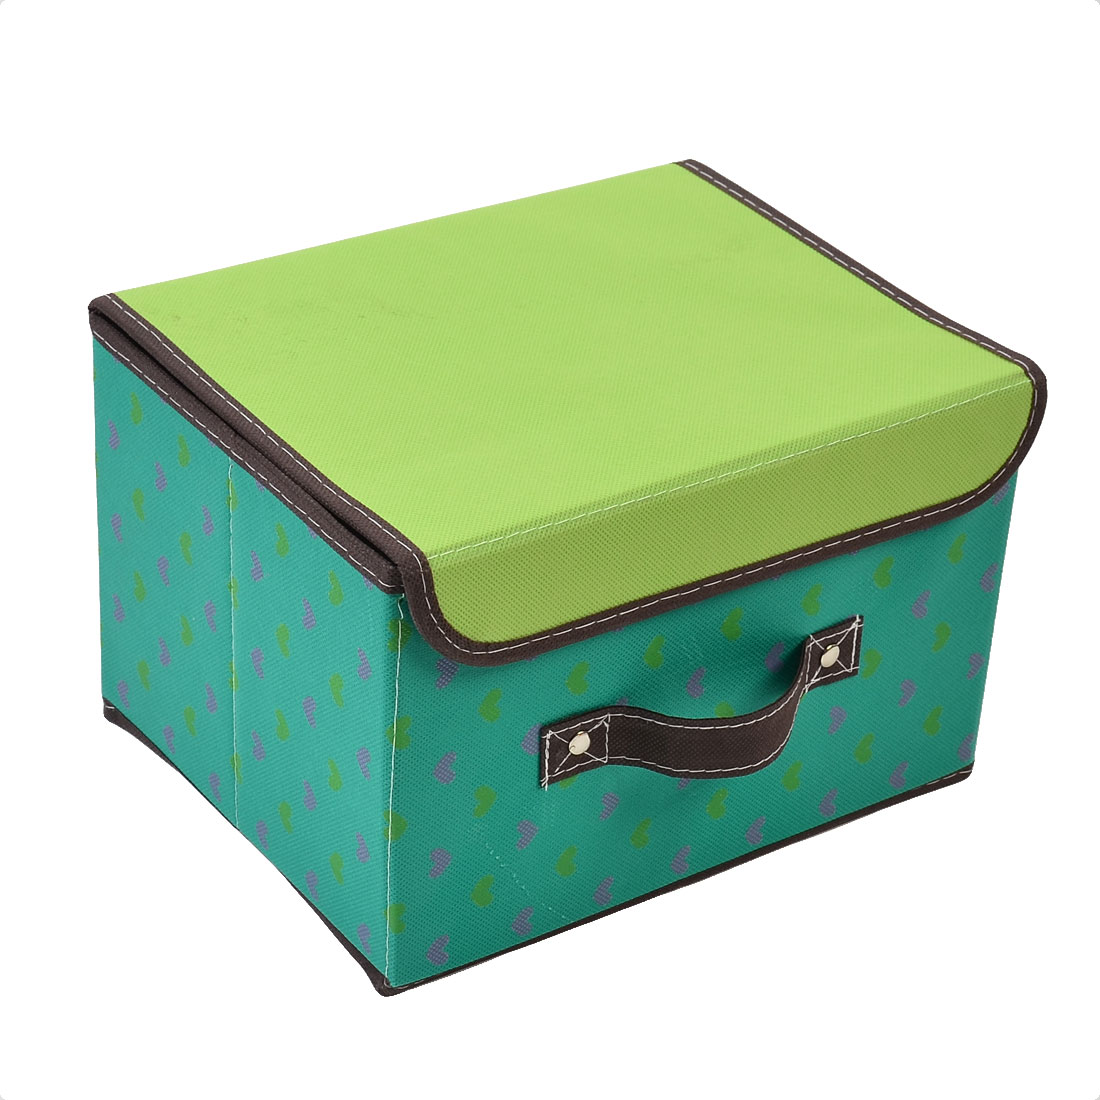 Non-woven Fabric Square Shape Heart Pattern Cosmetic Makeup Storage Box Green